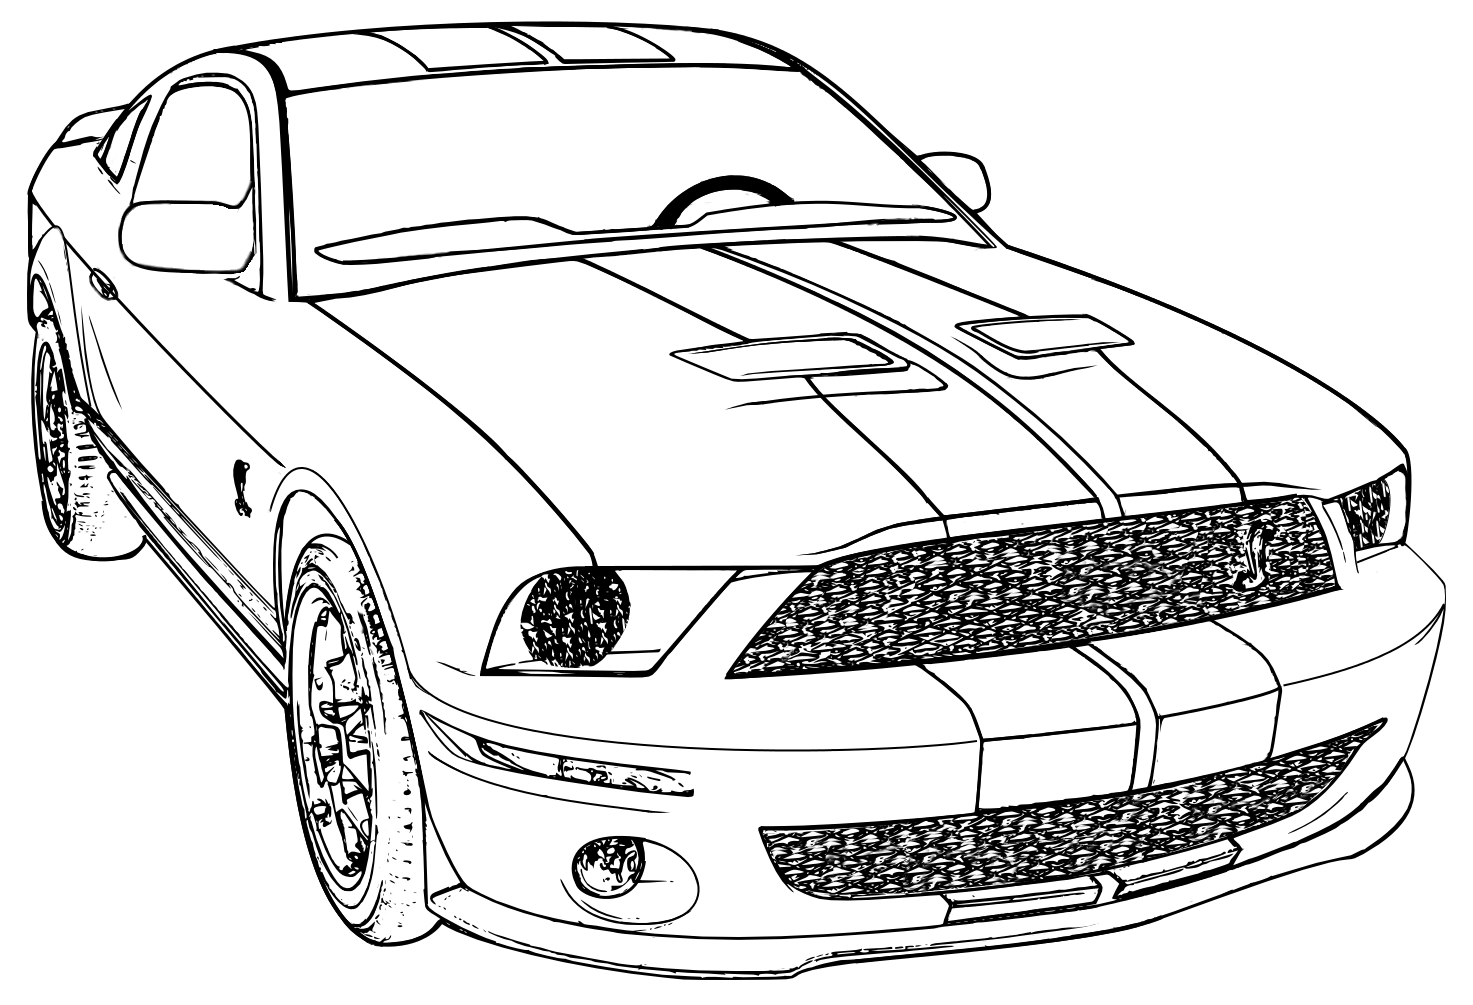 cars for coloring free printable race car coloring pages for kids for coloring cars